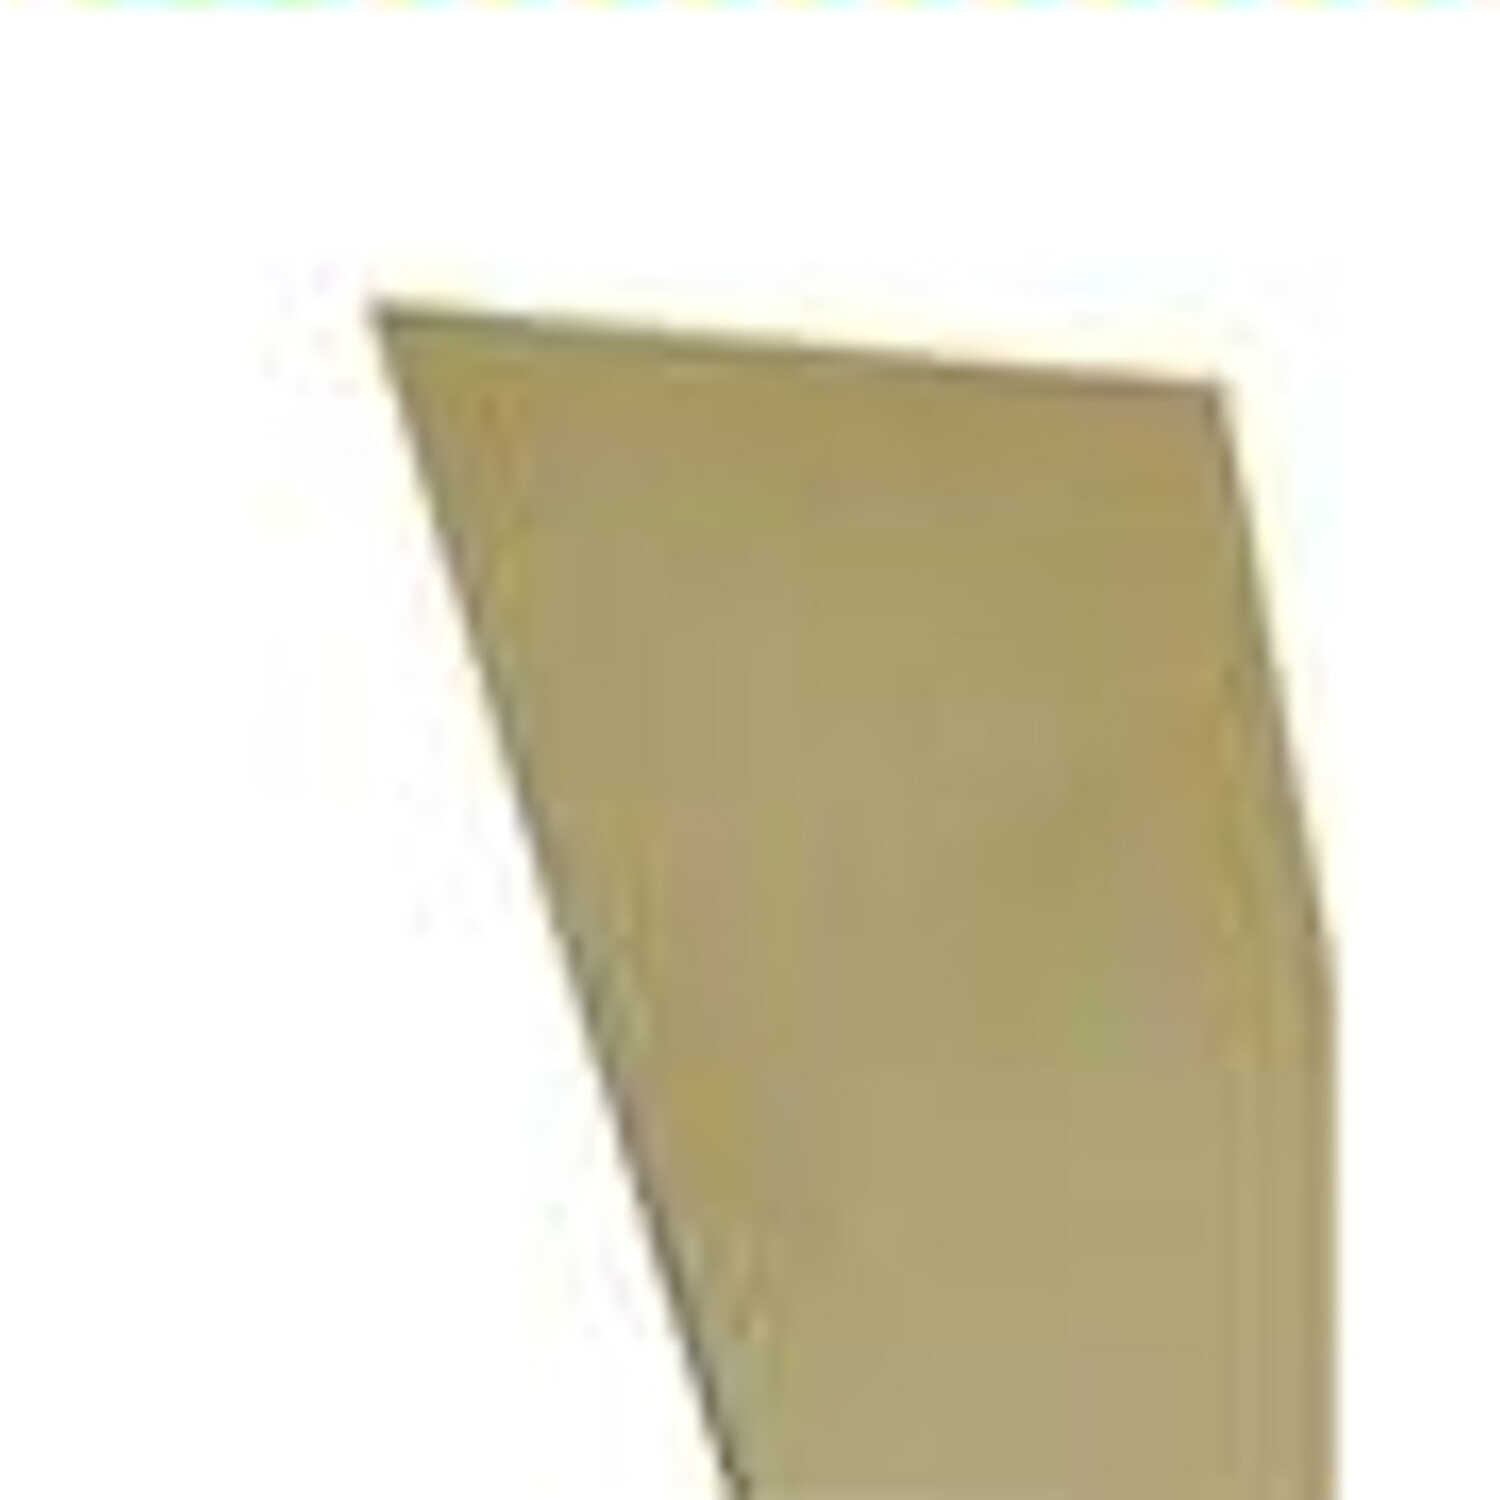 K&S  0.01 in.  x 6 in. W x 12 in. L Brass  Sheet Metal